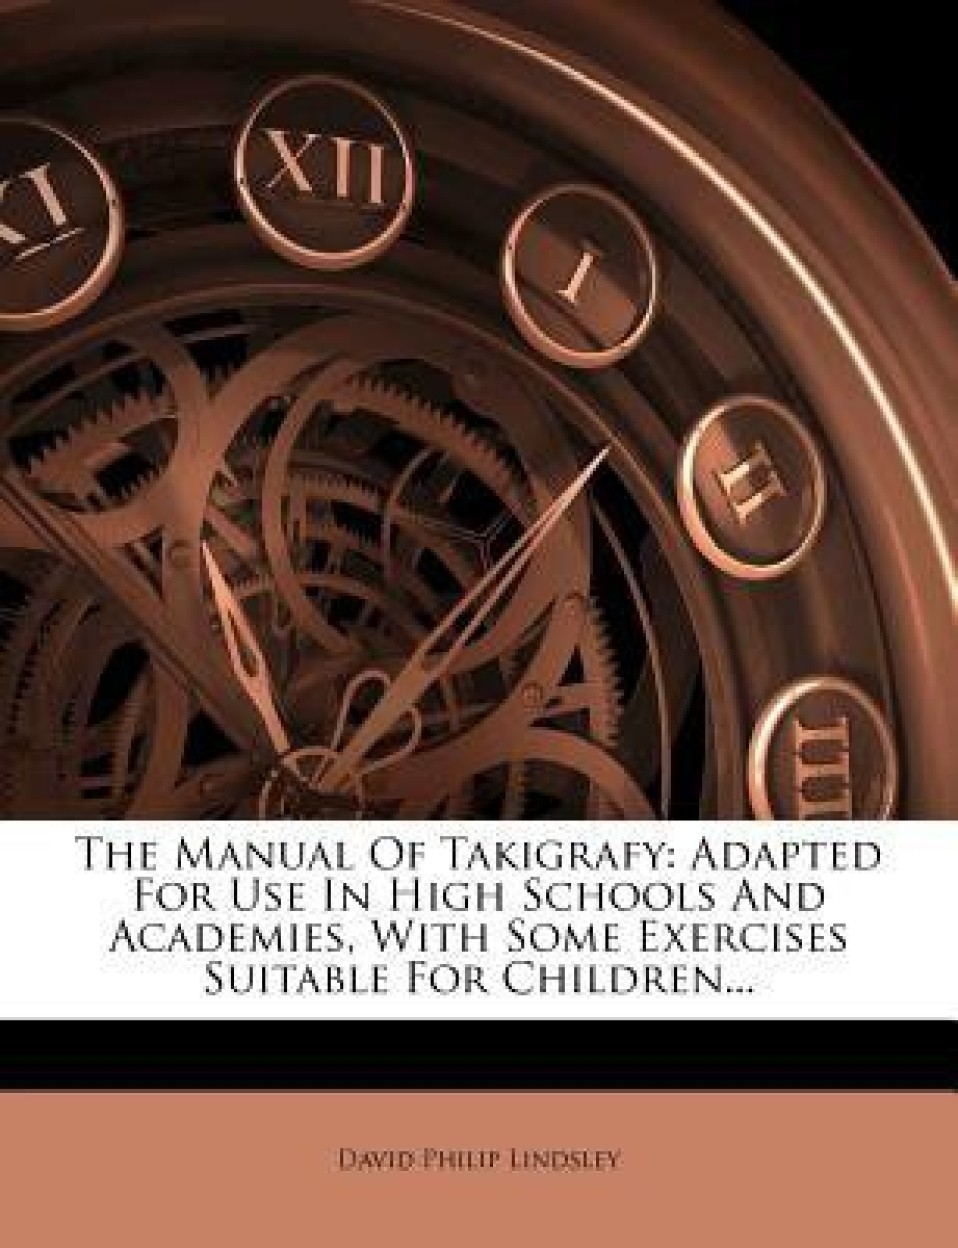 The Manual of Takigrafy: Adapted for Use in High Schools and Academies, with Some Exercises Suitable for Children...